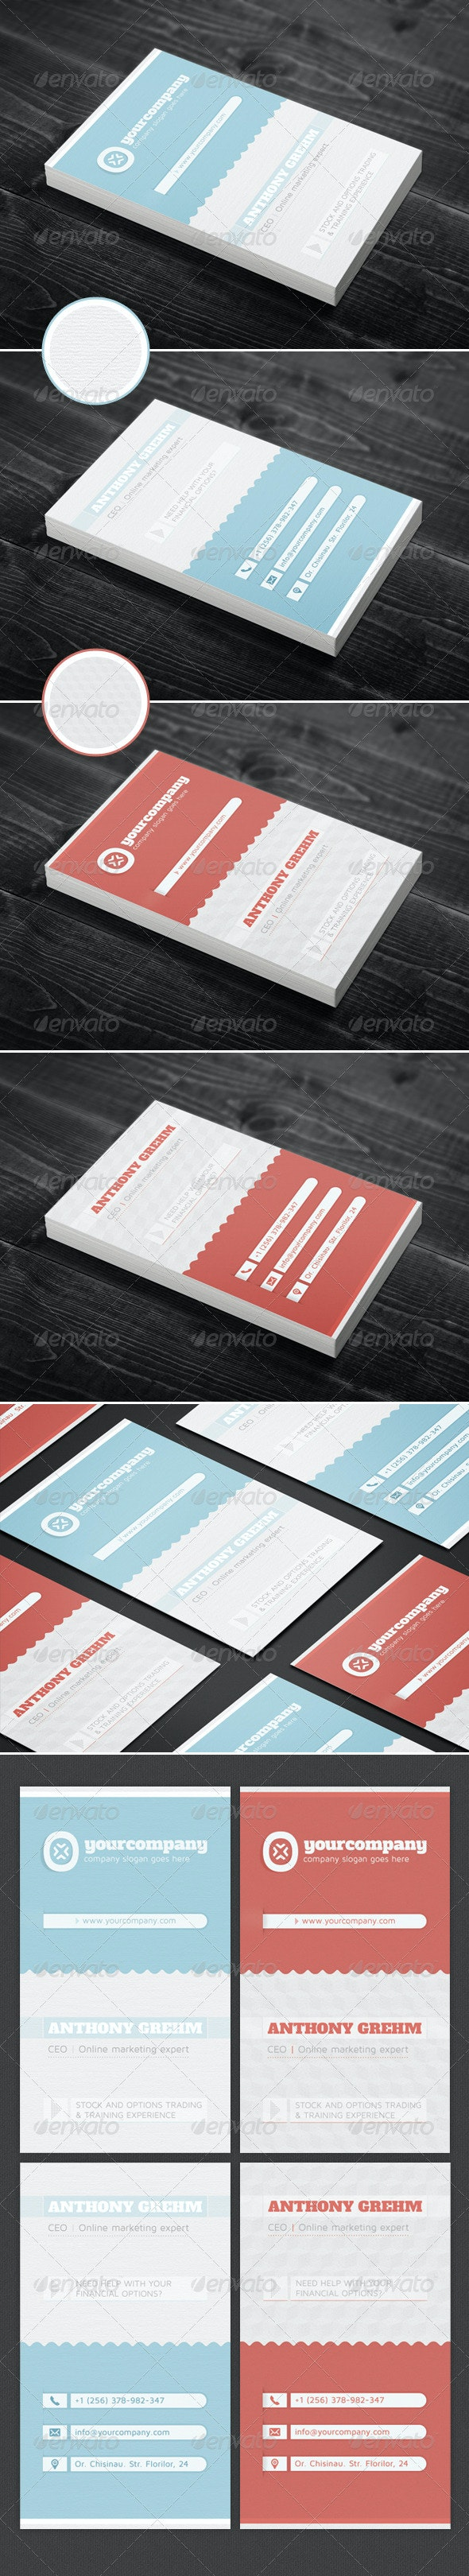 Simple & Clean Corporate Business Card - Creative Business Cards